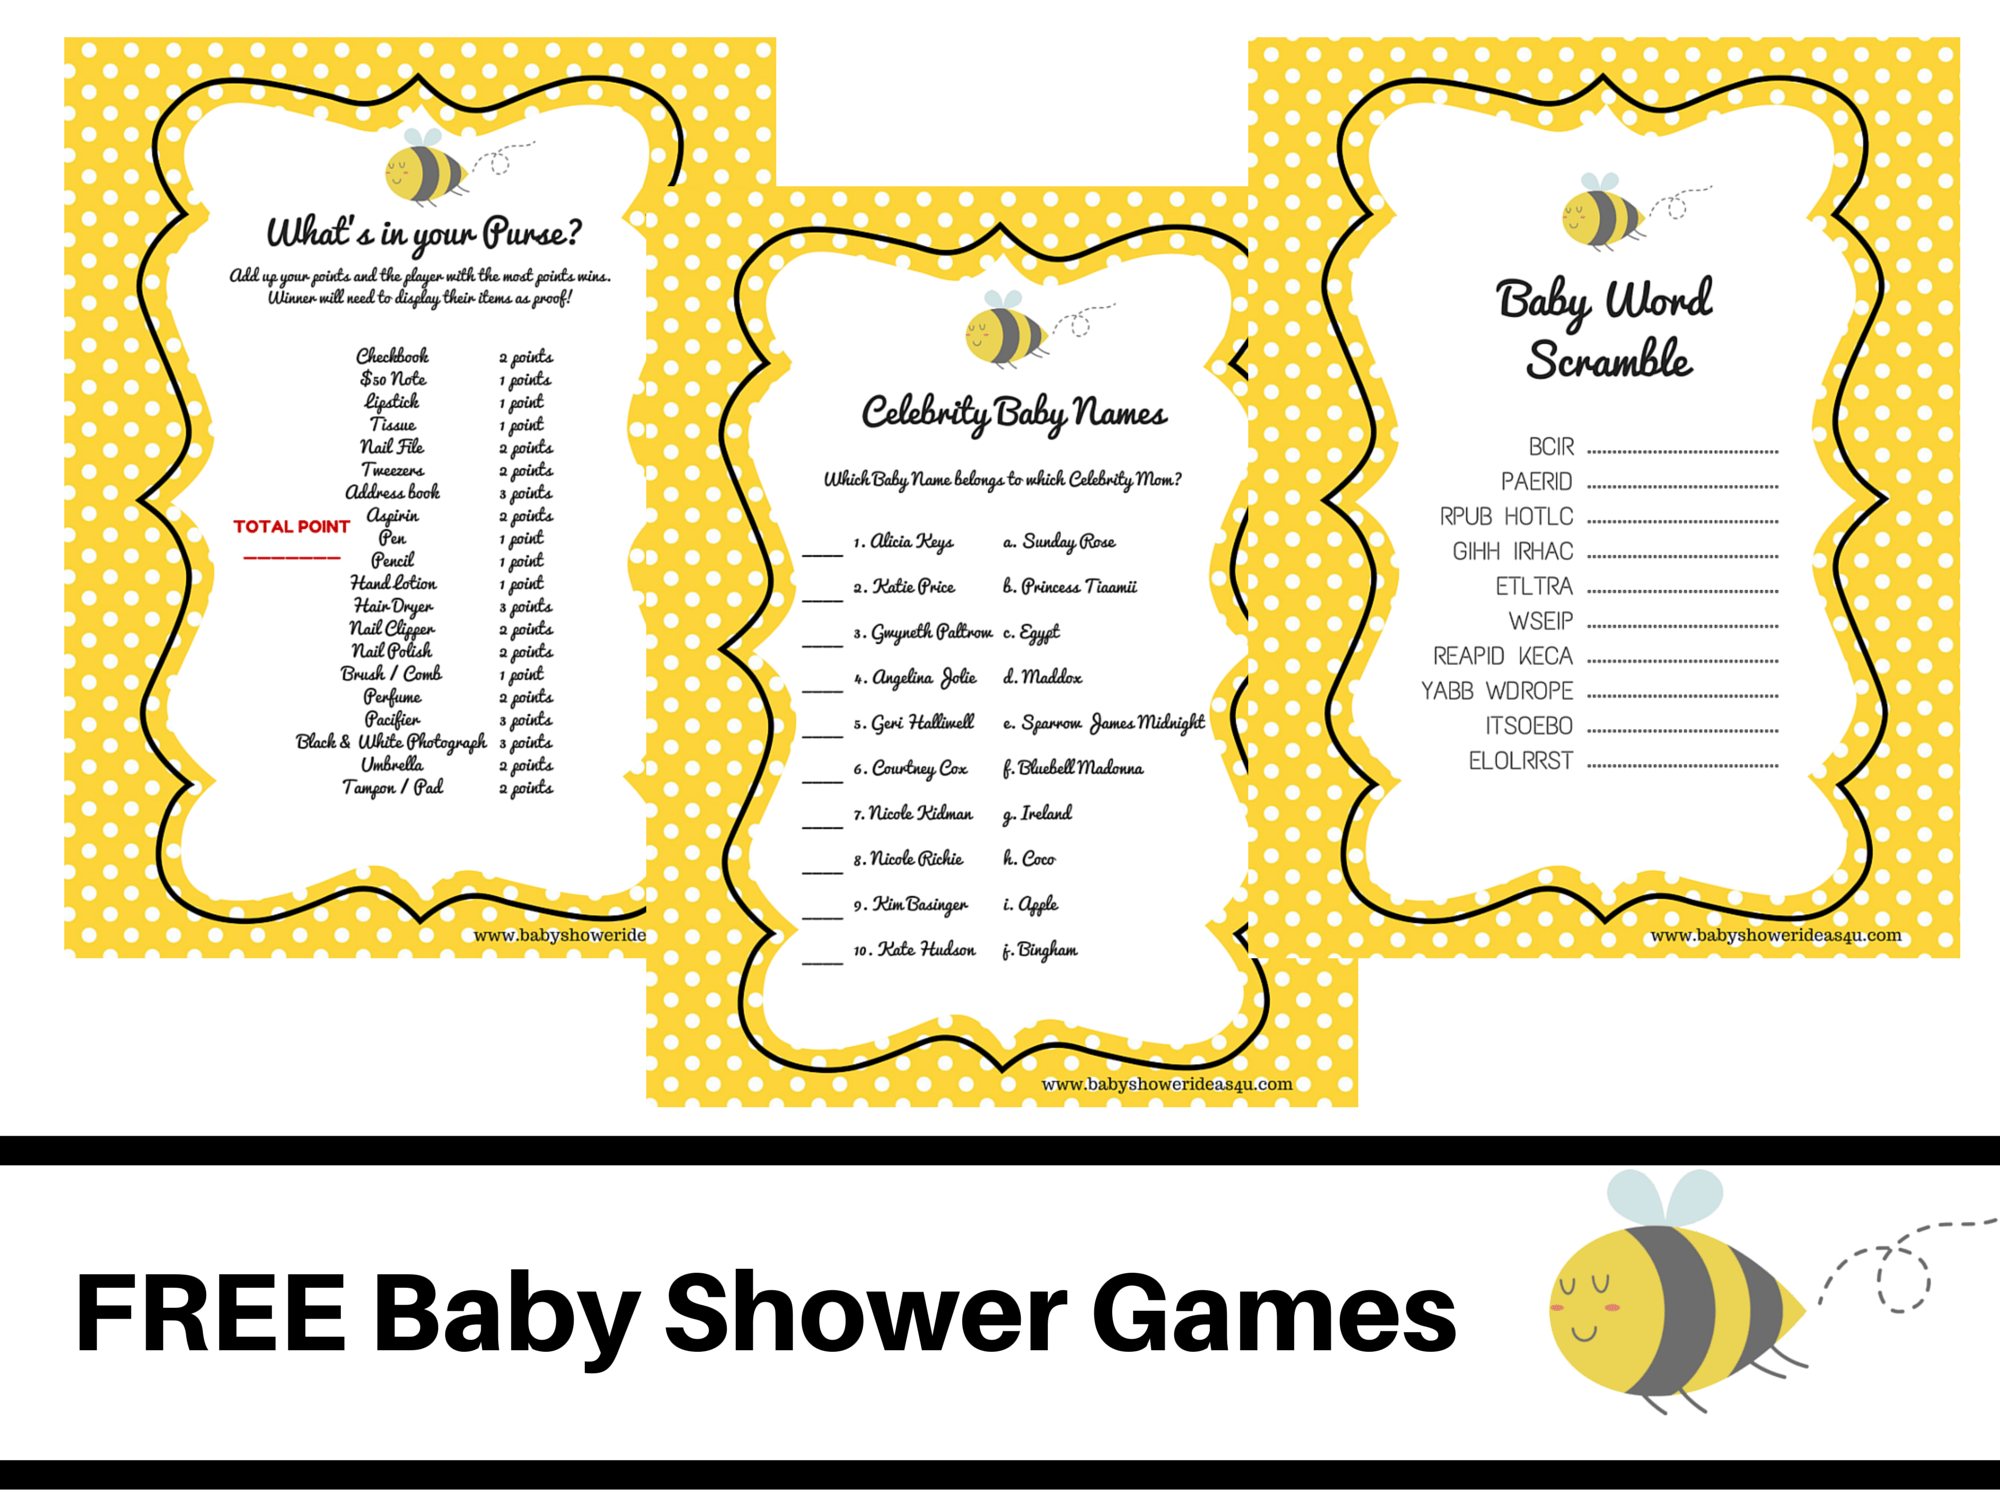 What Will It Bee Theme Baby Shower Free Printable Baby Shower Games Baby Word Scramble Baby